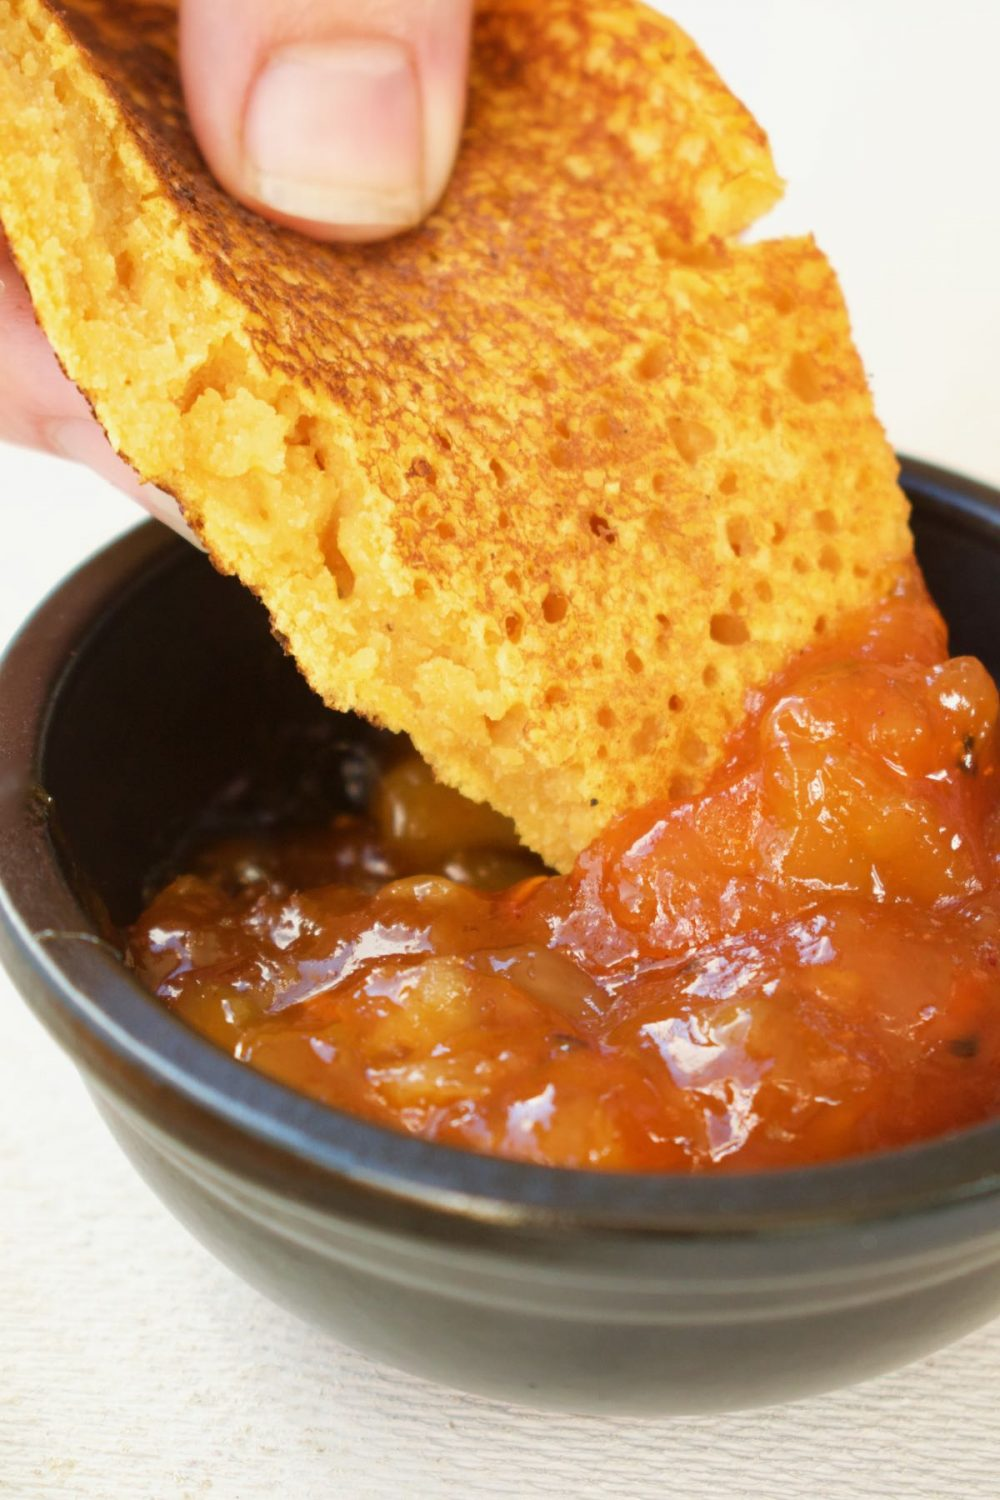 Dipping the flatbread in a black pot of mango chutney